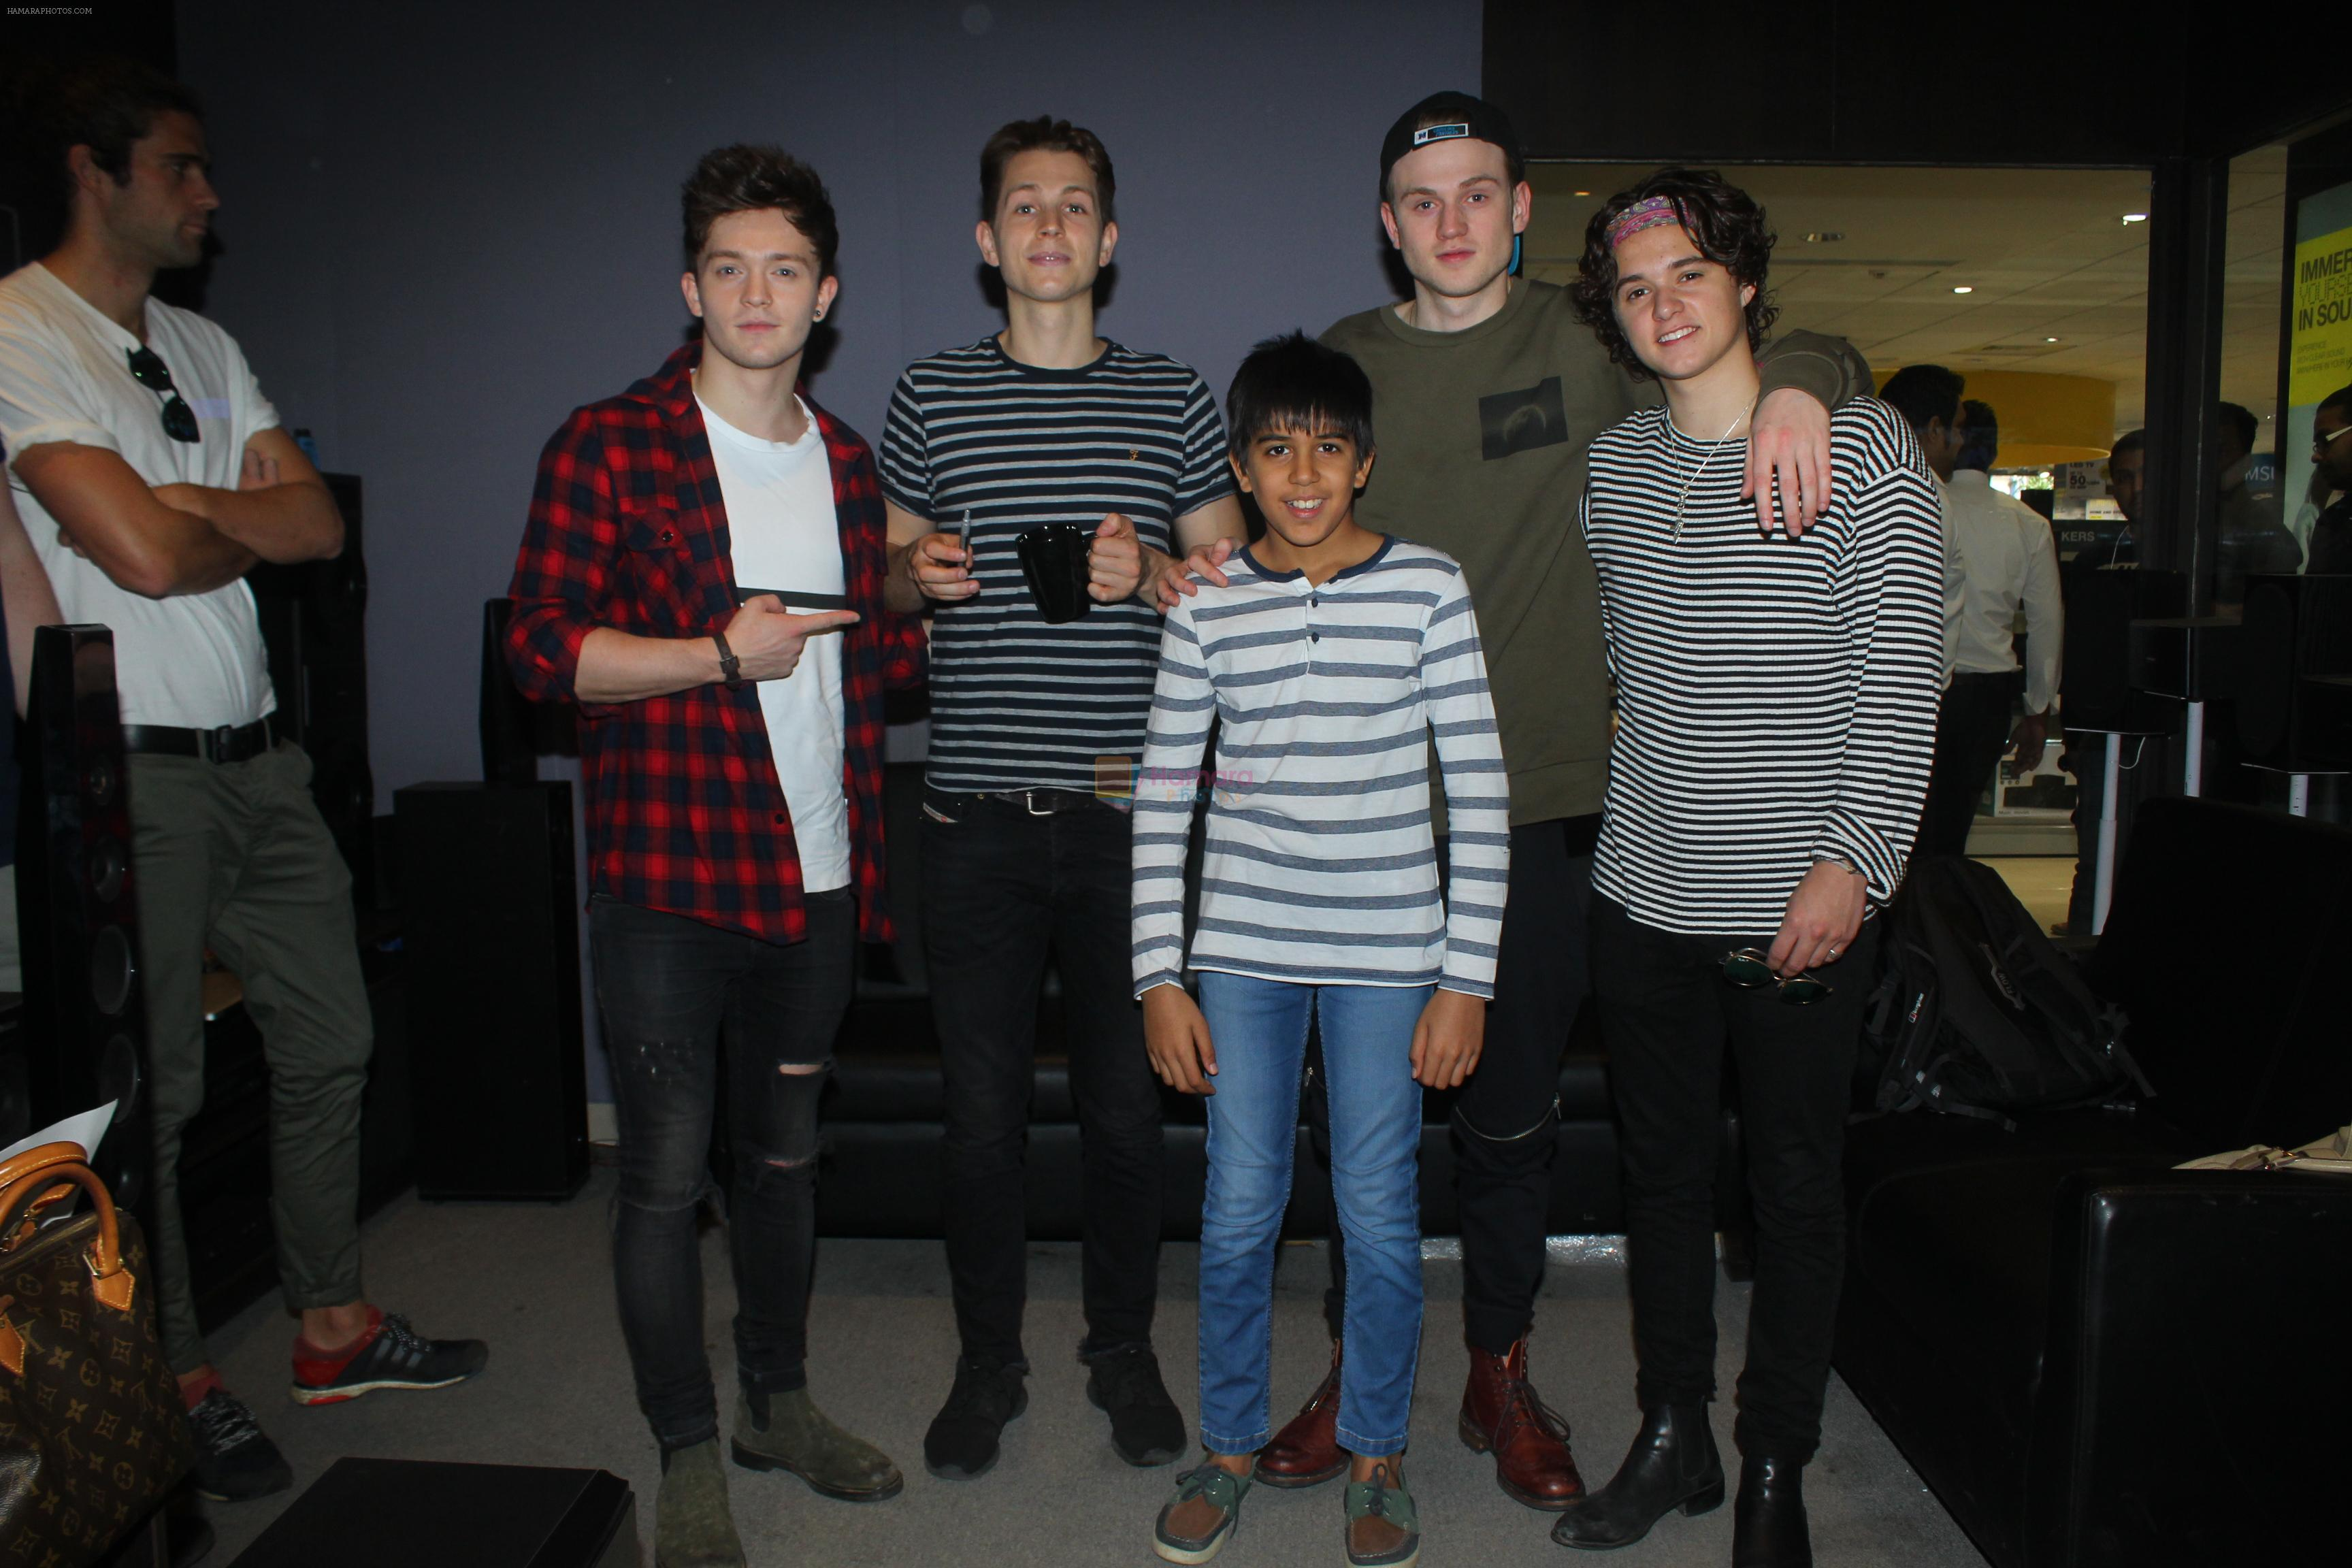 British Boy Band The Vamps met with fans this morning along with Director Farah Khan at Reliance Digital in Bandra on 18th Nov 2016